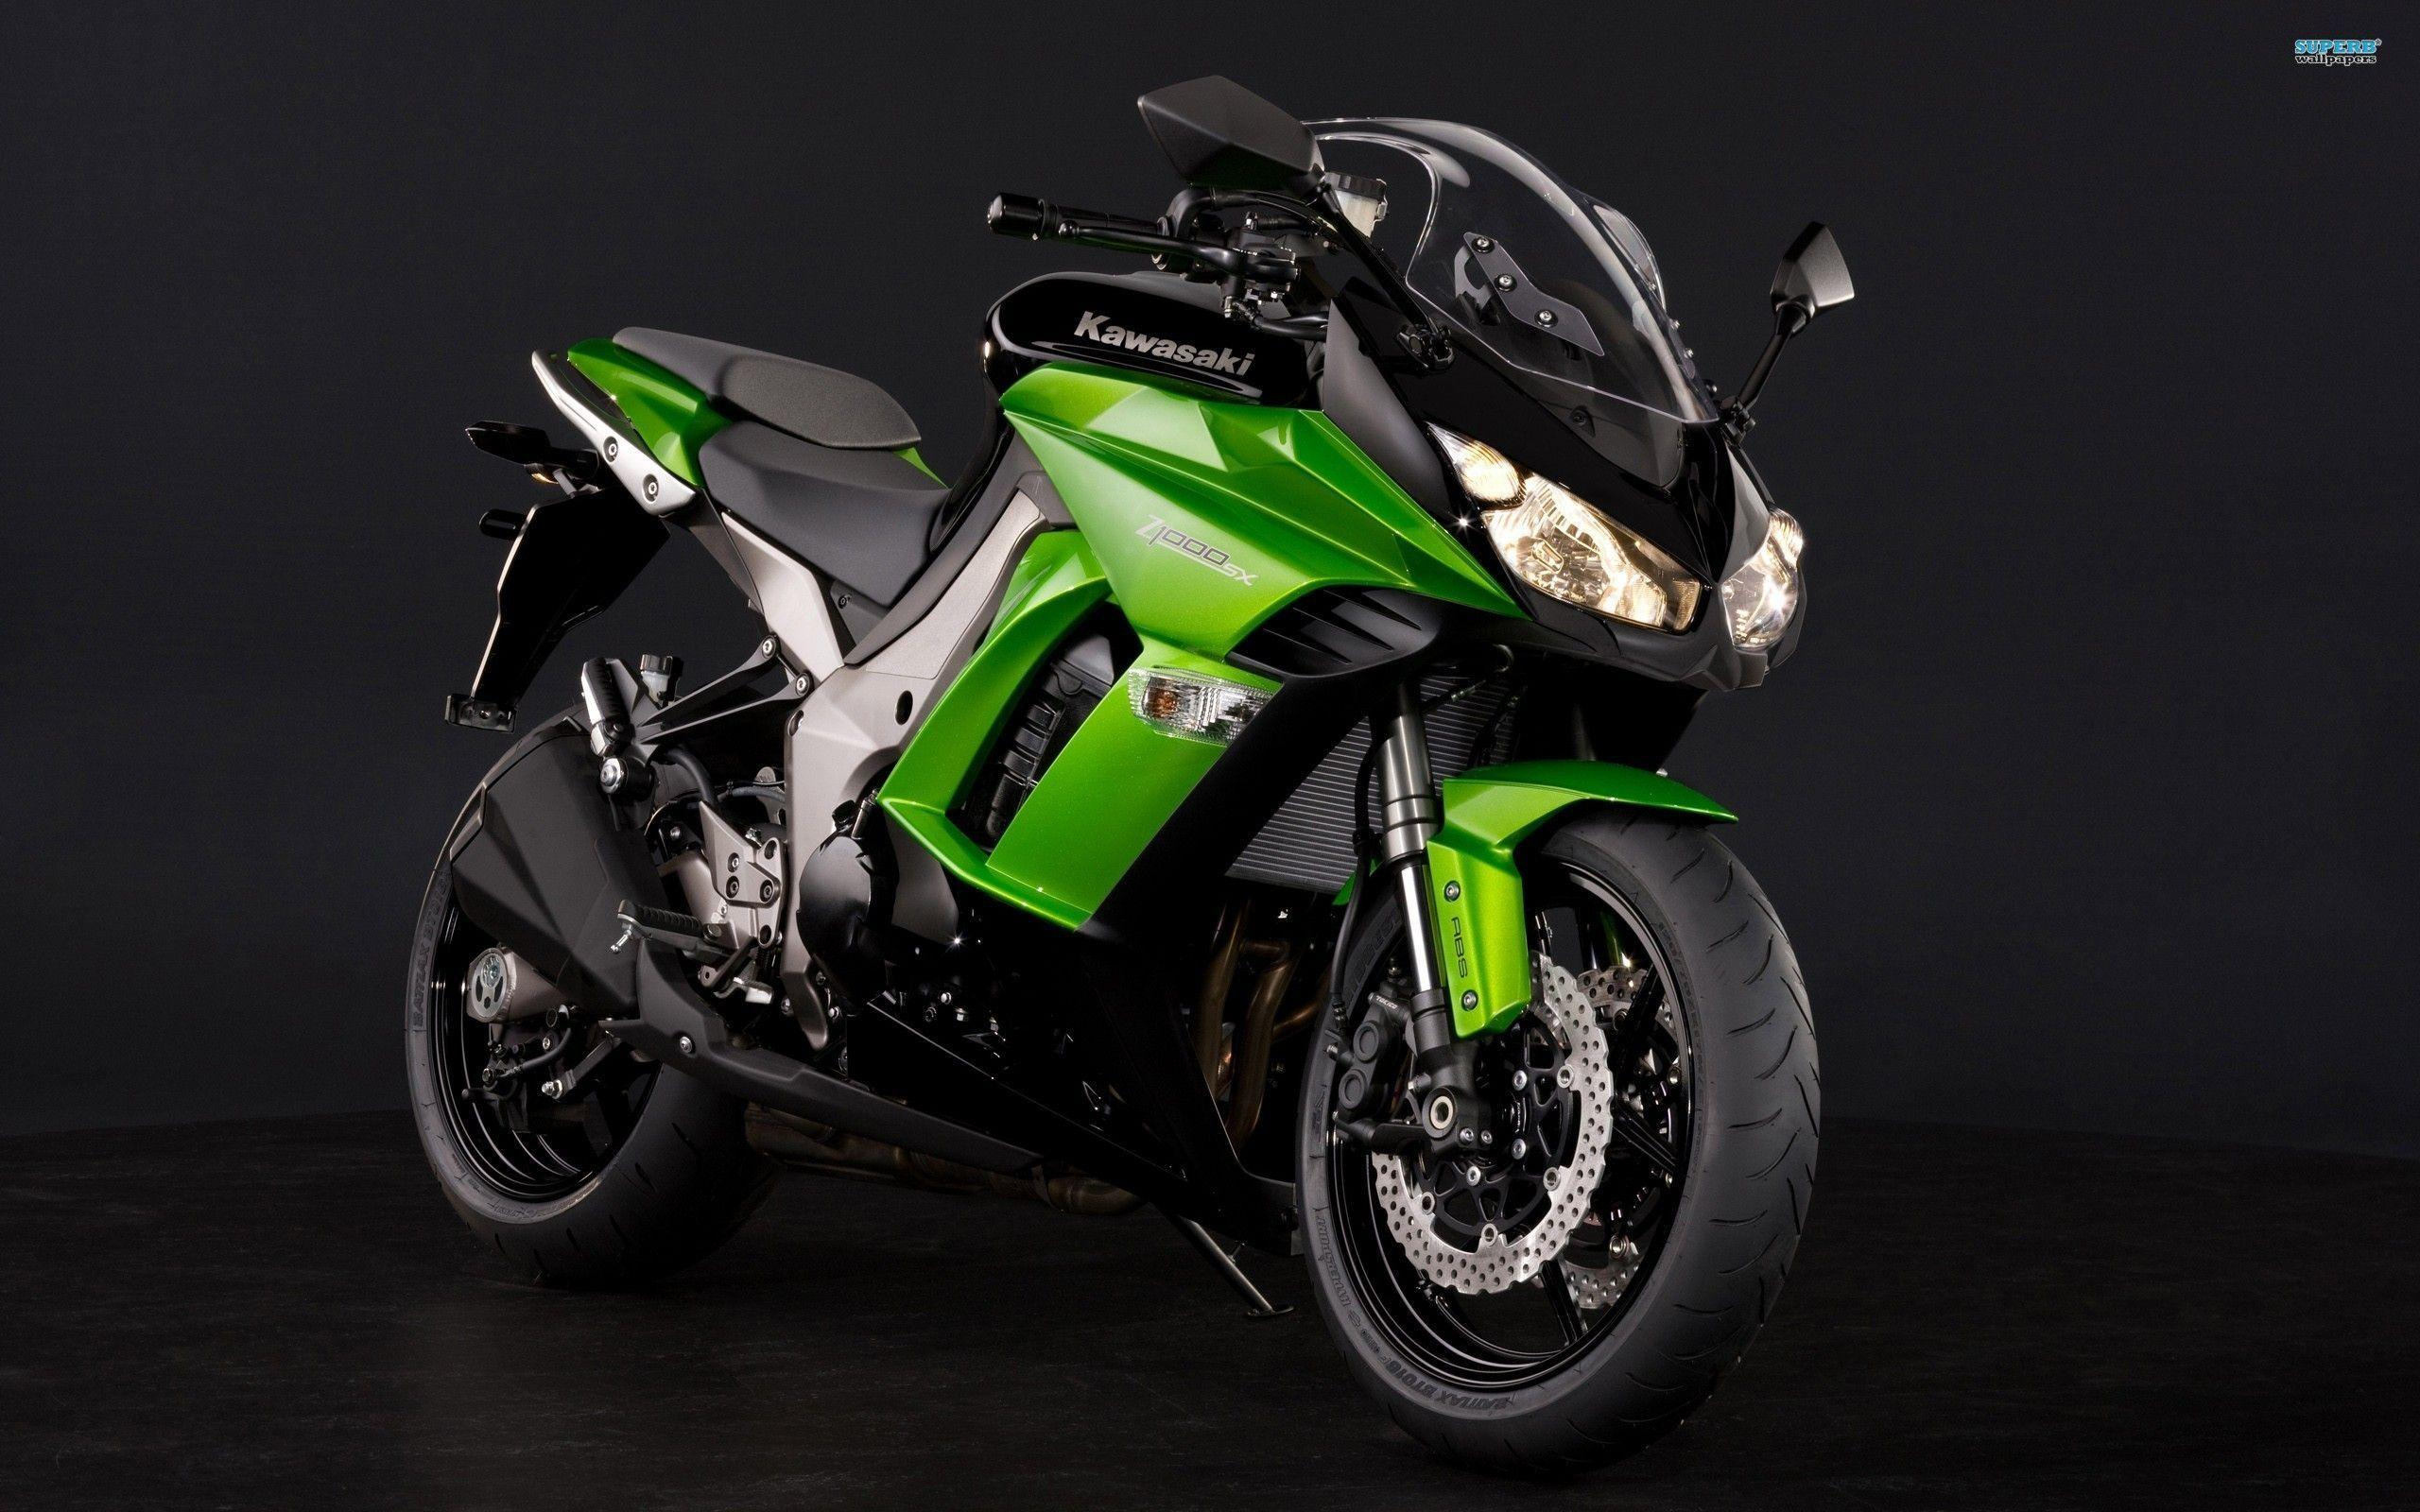 Kawasaki Ninja Wallpapers